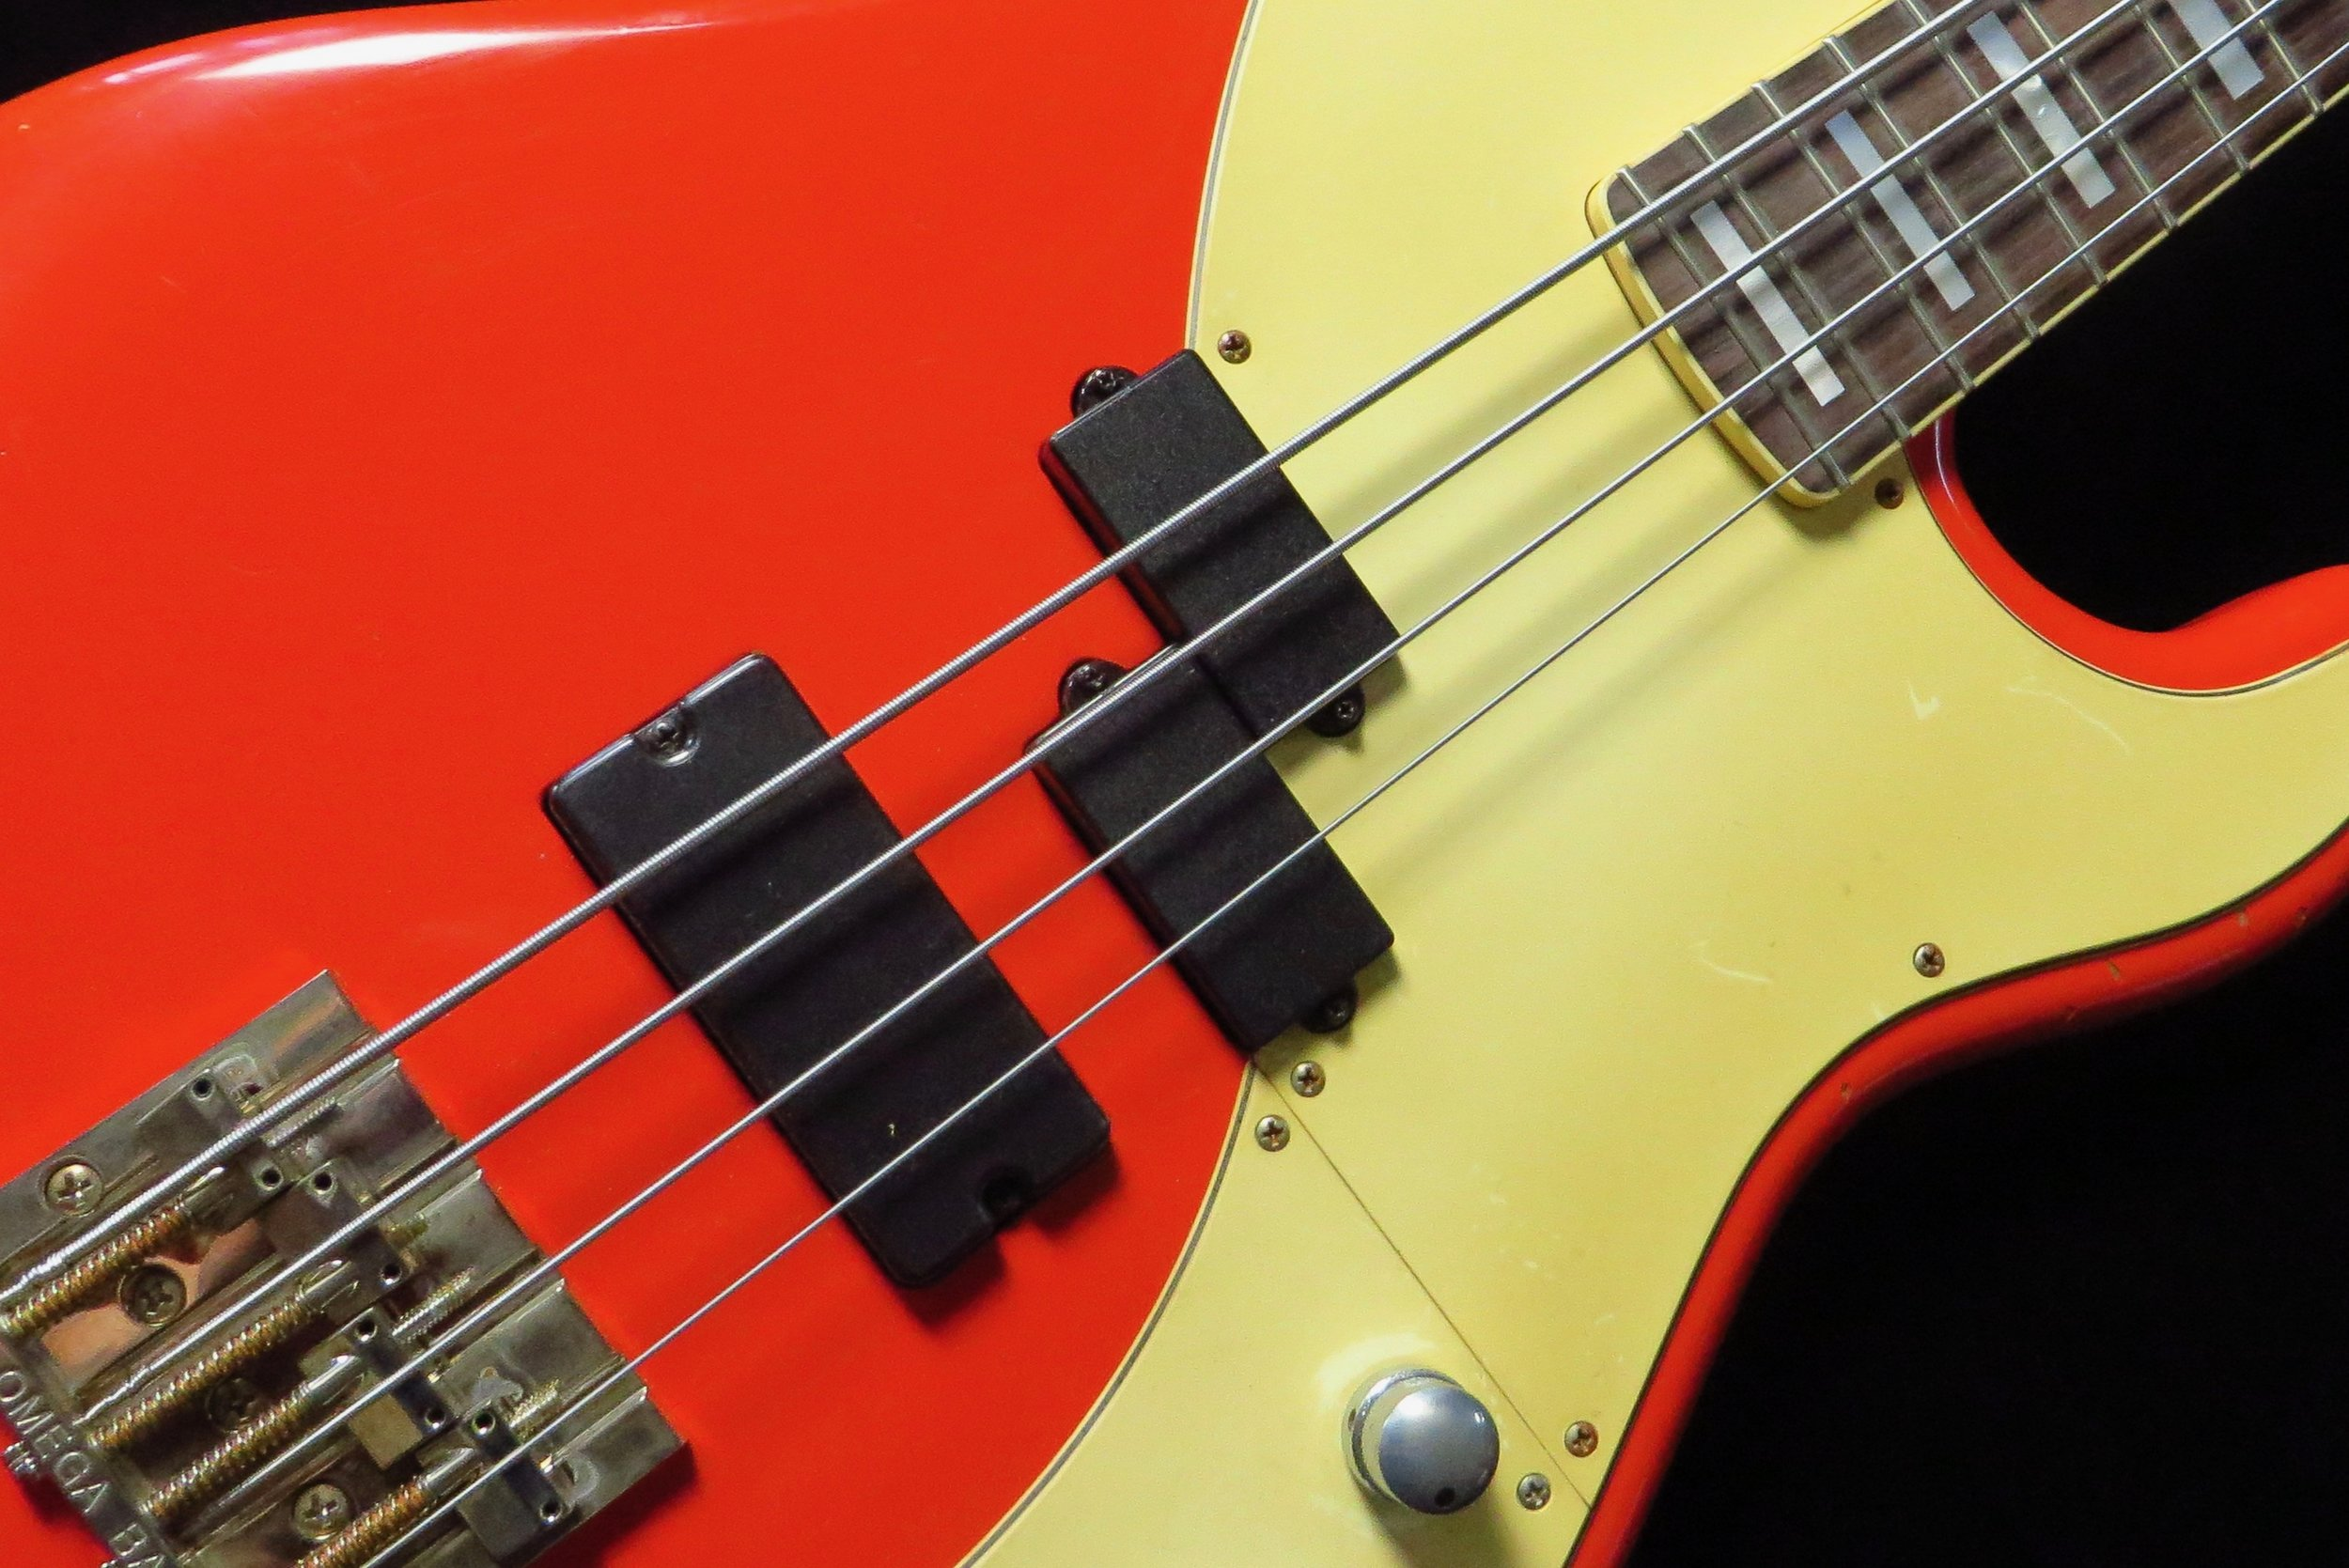 Pee-Soap - For a richer Jay sound we use our soapbar. This humbucker can also be switched to